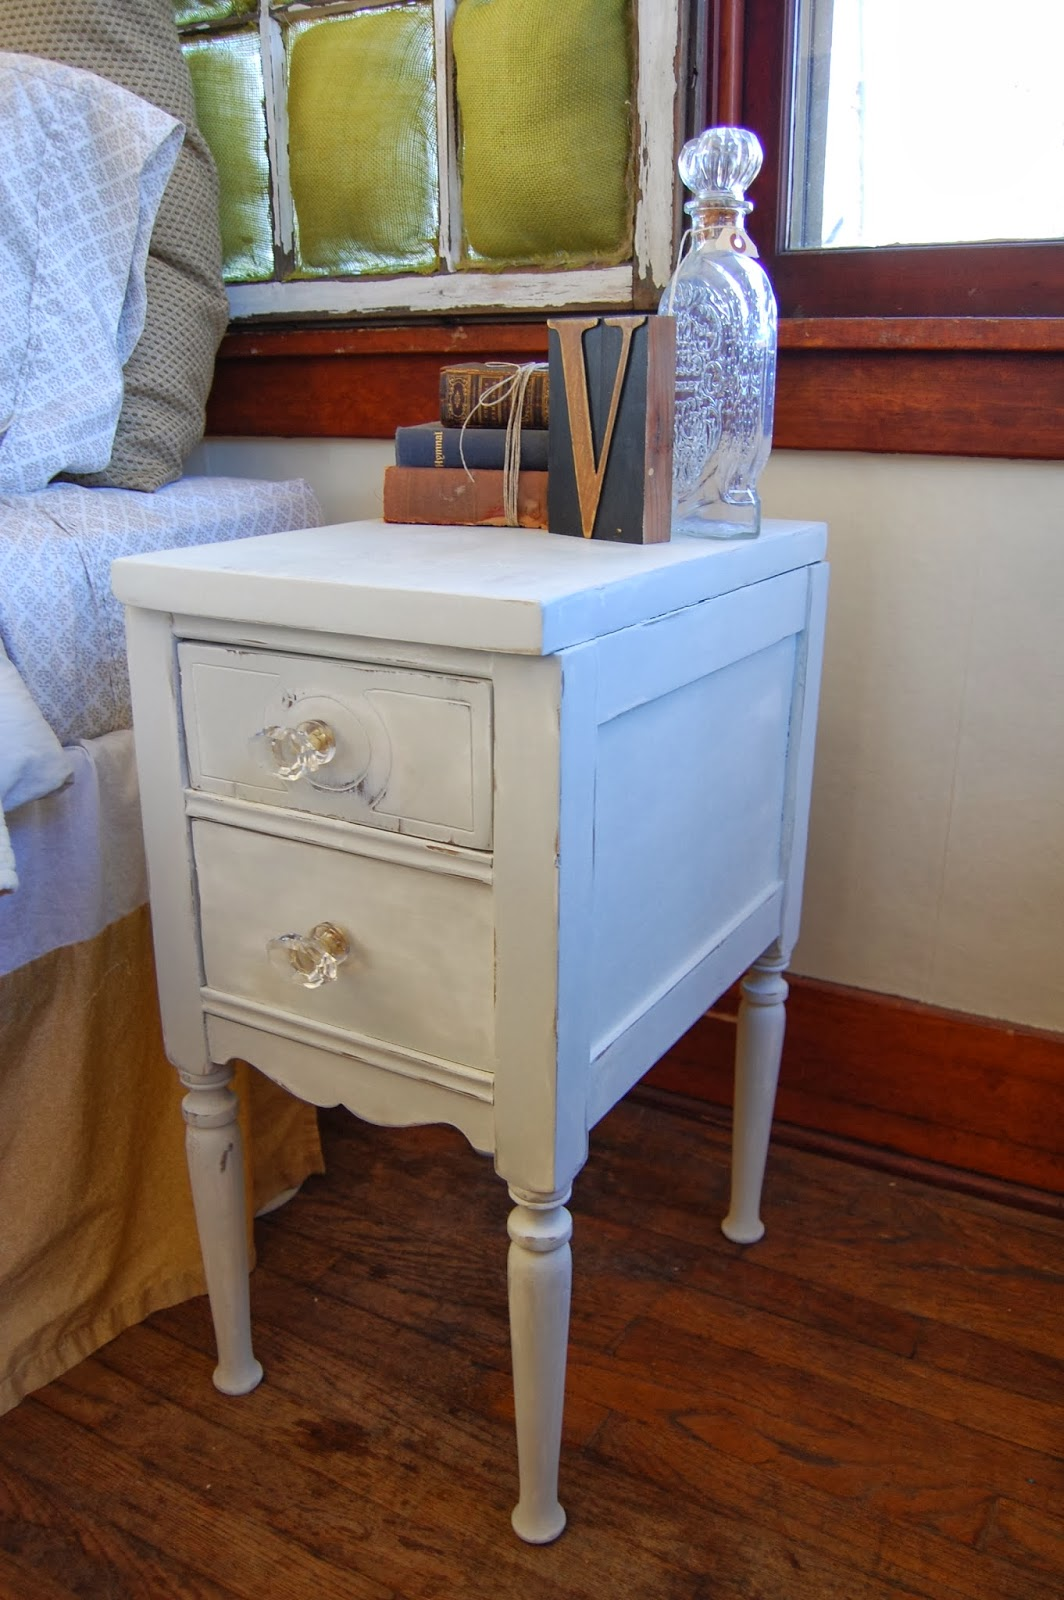 Old Bedside Table: SimplyCozyRestoration: Shabby Chic Antique Bedside Table